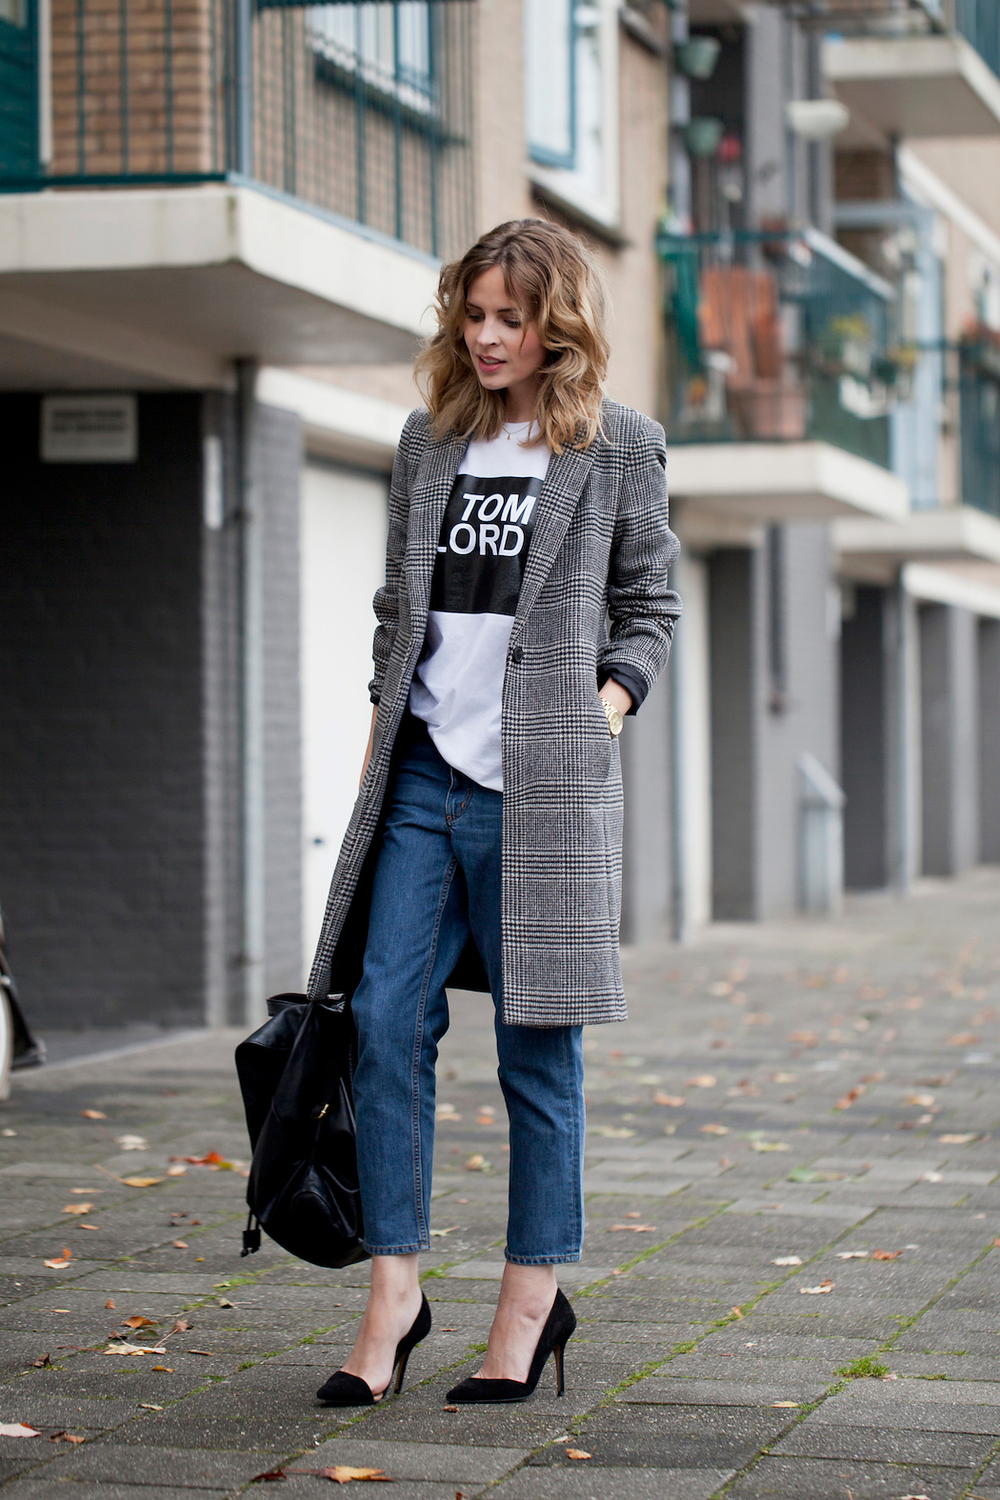 London Girl Style How To Dress Like A Br...